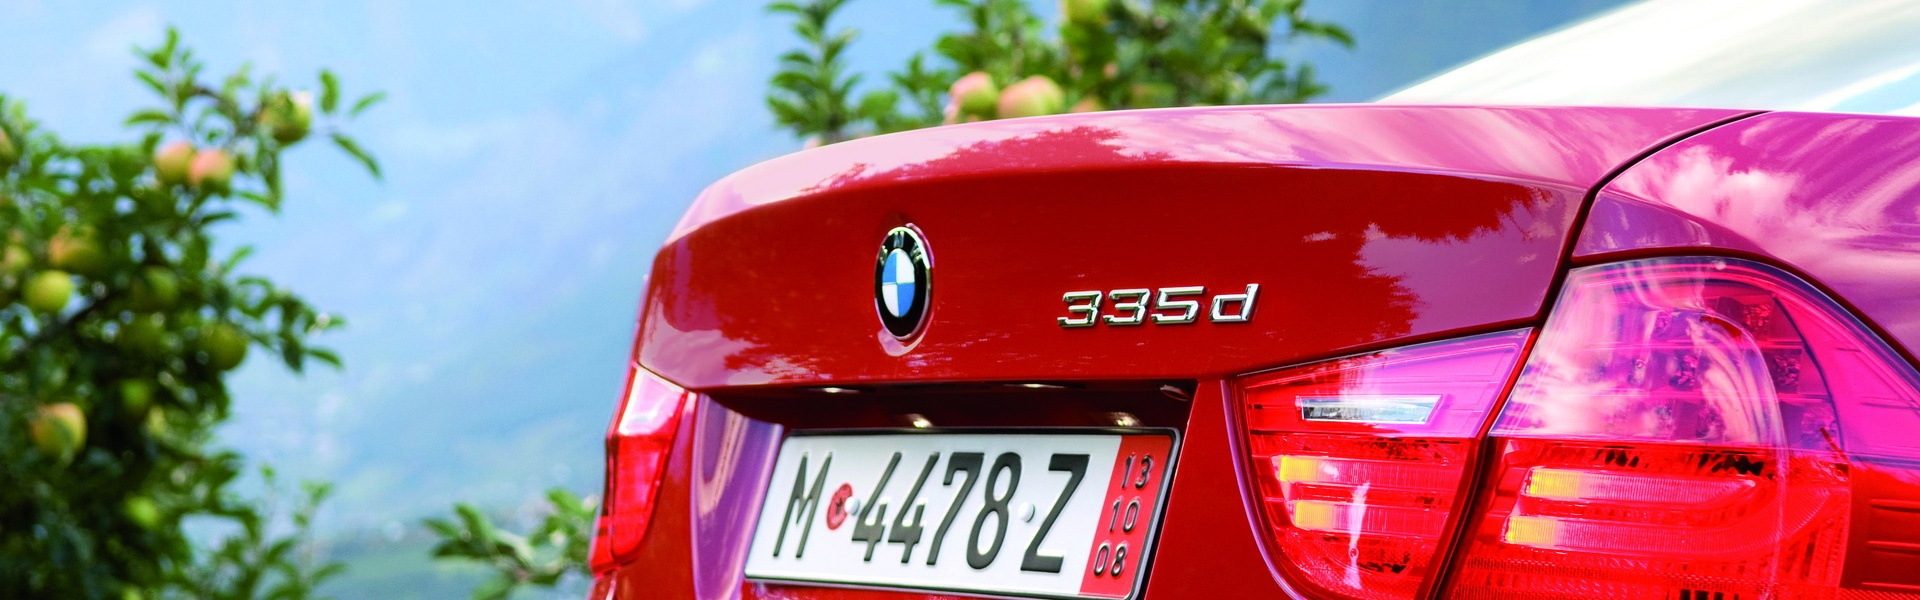 bmw-sued-over-illegal-emissions-cheating-2 (1).jpg